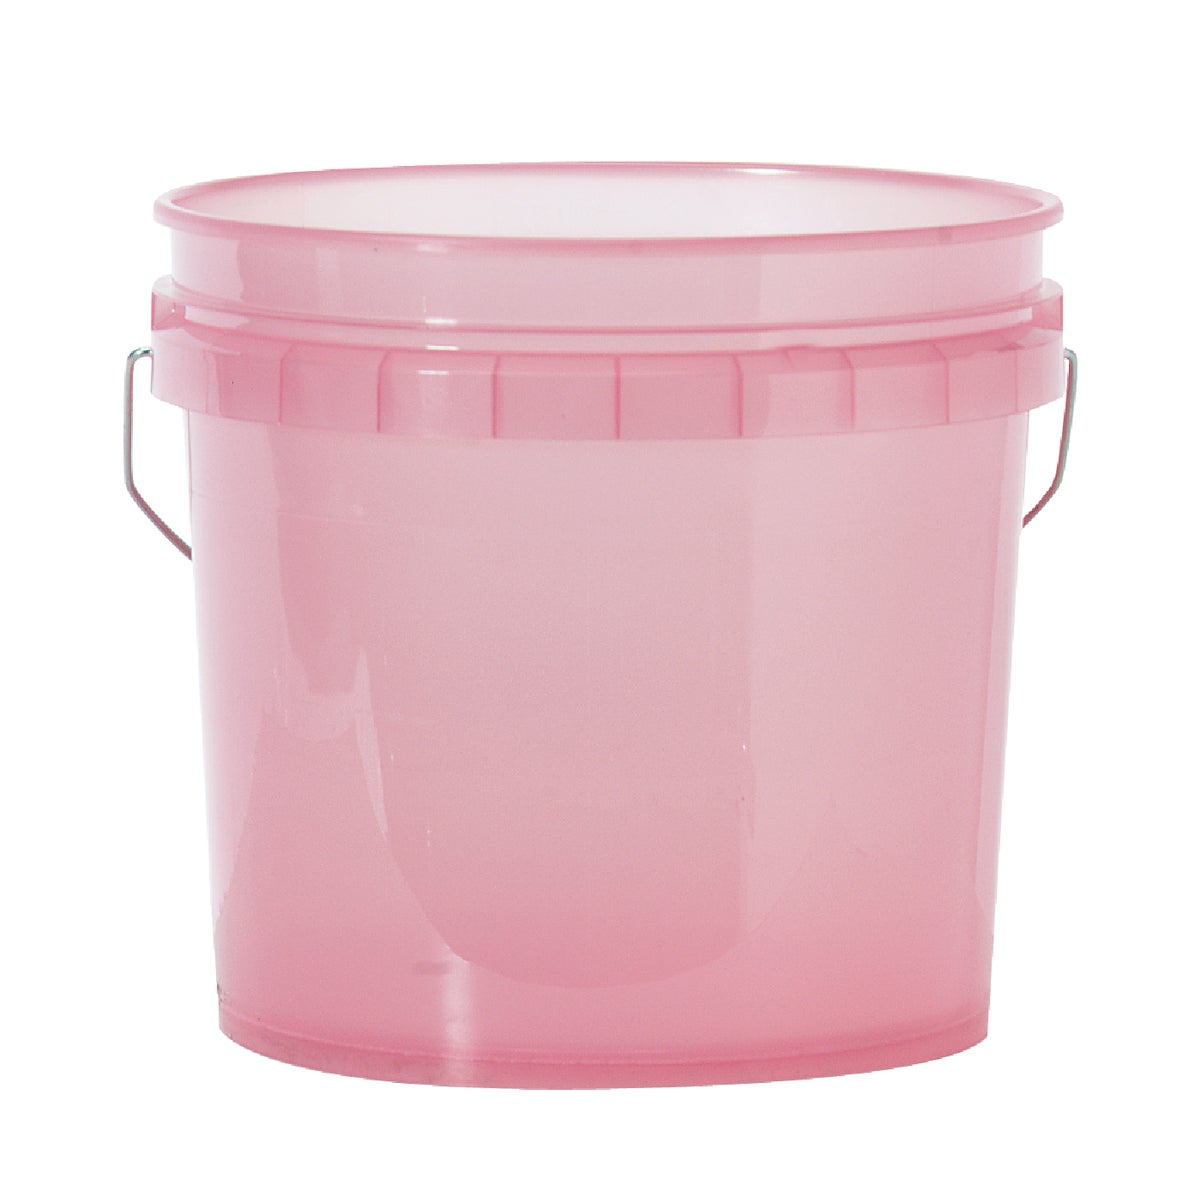 3.5GAL PLASTIC PAIL - 3GLWMN by Leaktite Corporation